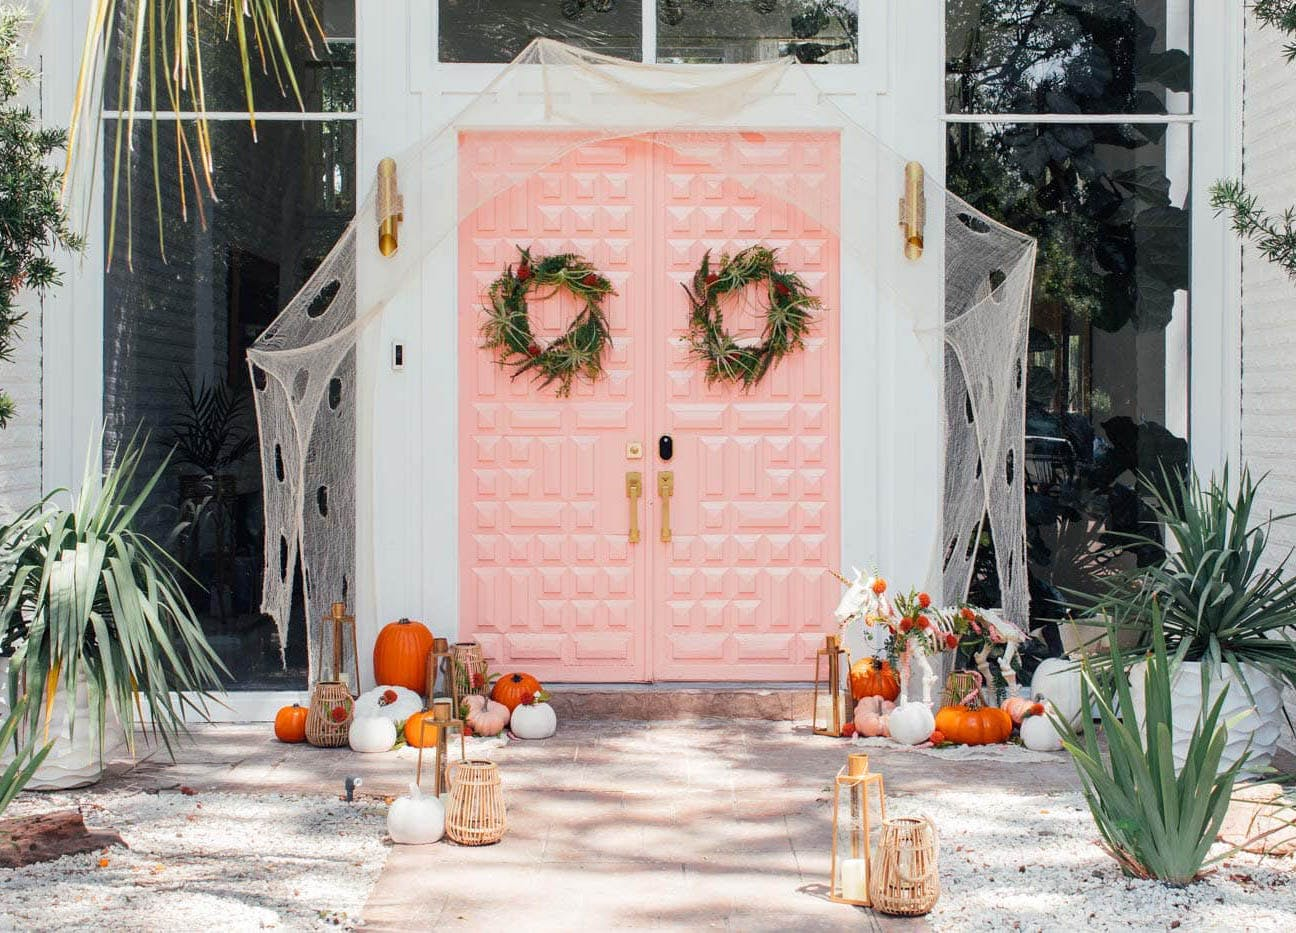 Scary Halloween Door Decorating Ideas from purewows3.imgix.net